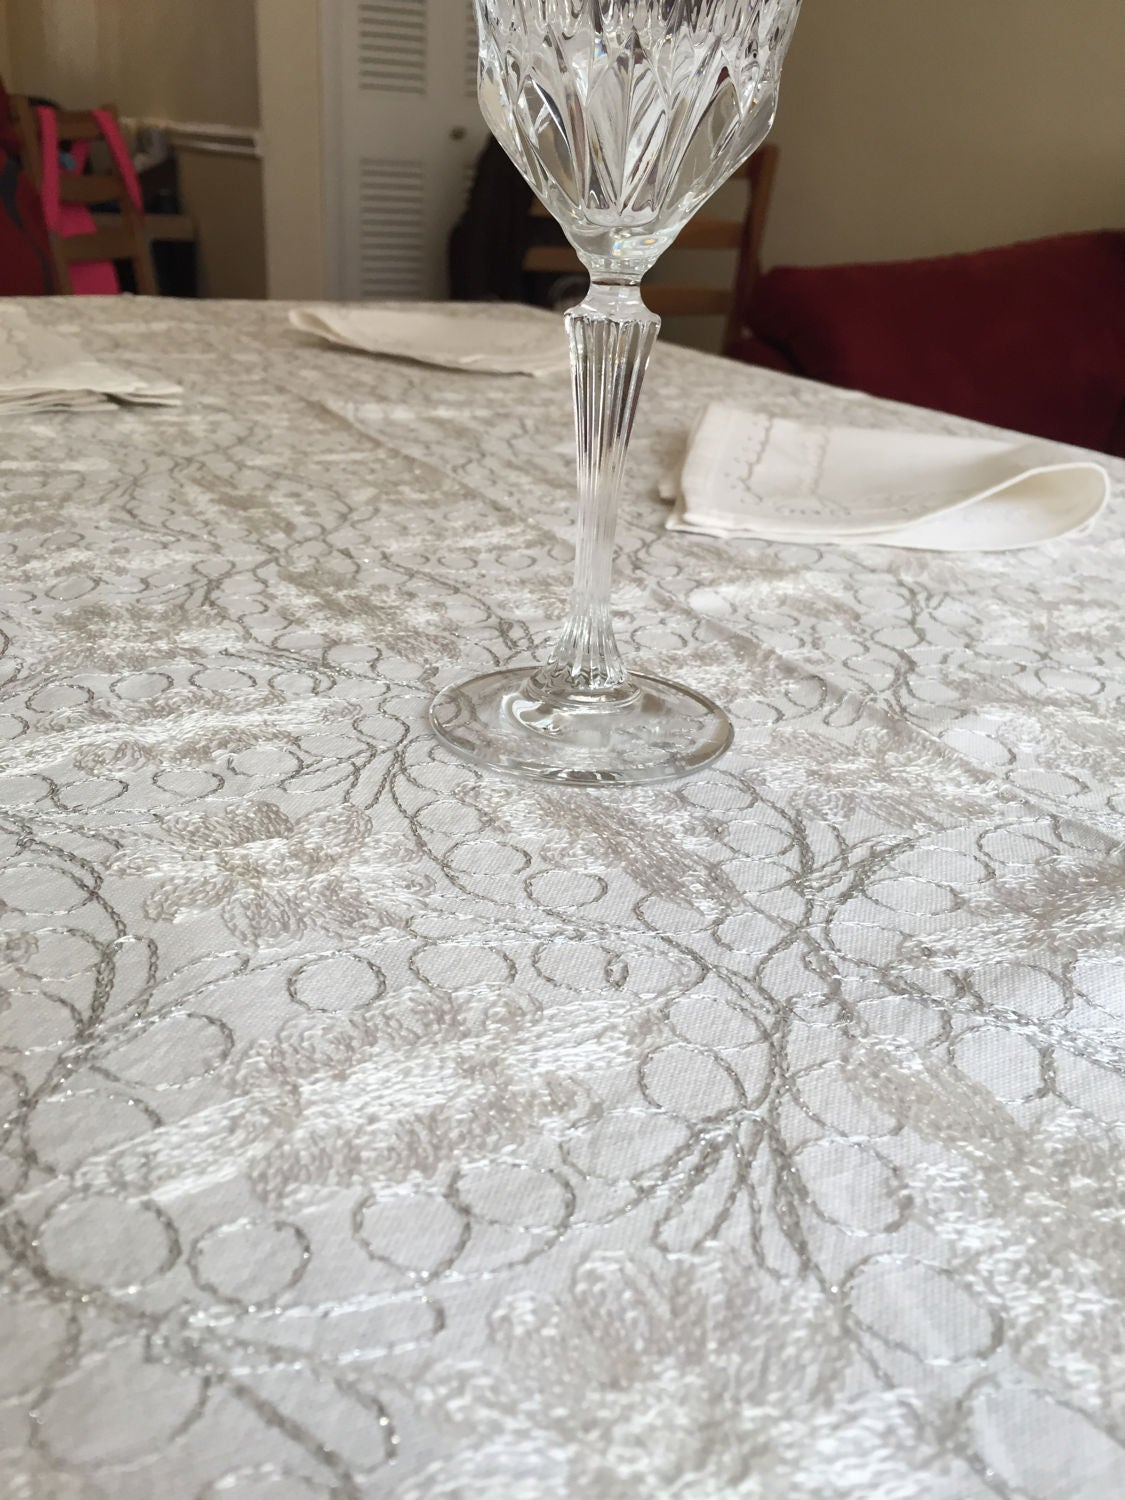 Tablecloth 80 X 60 Inches, And 8 Napkins, Aghabani Tablecloth, Embroidered  White Tablecloth, Syrian Textiles, White And Silver Tablecloth